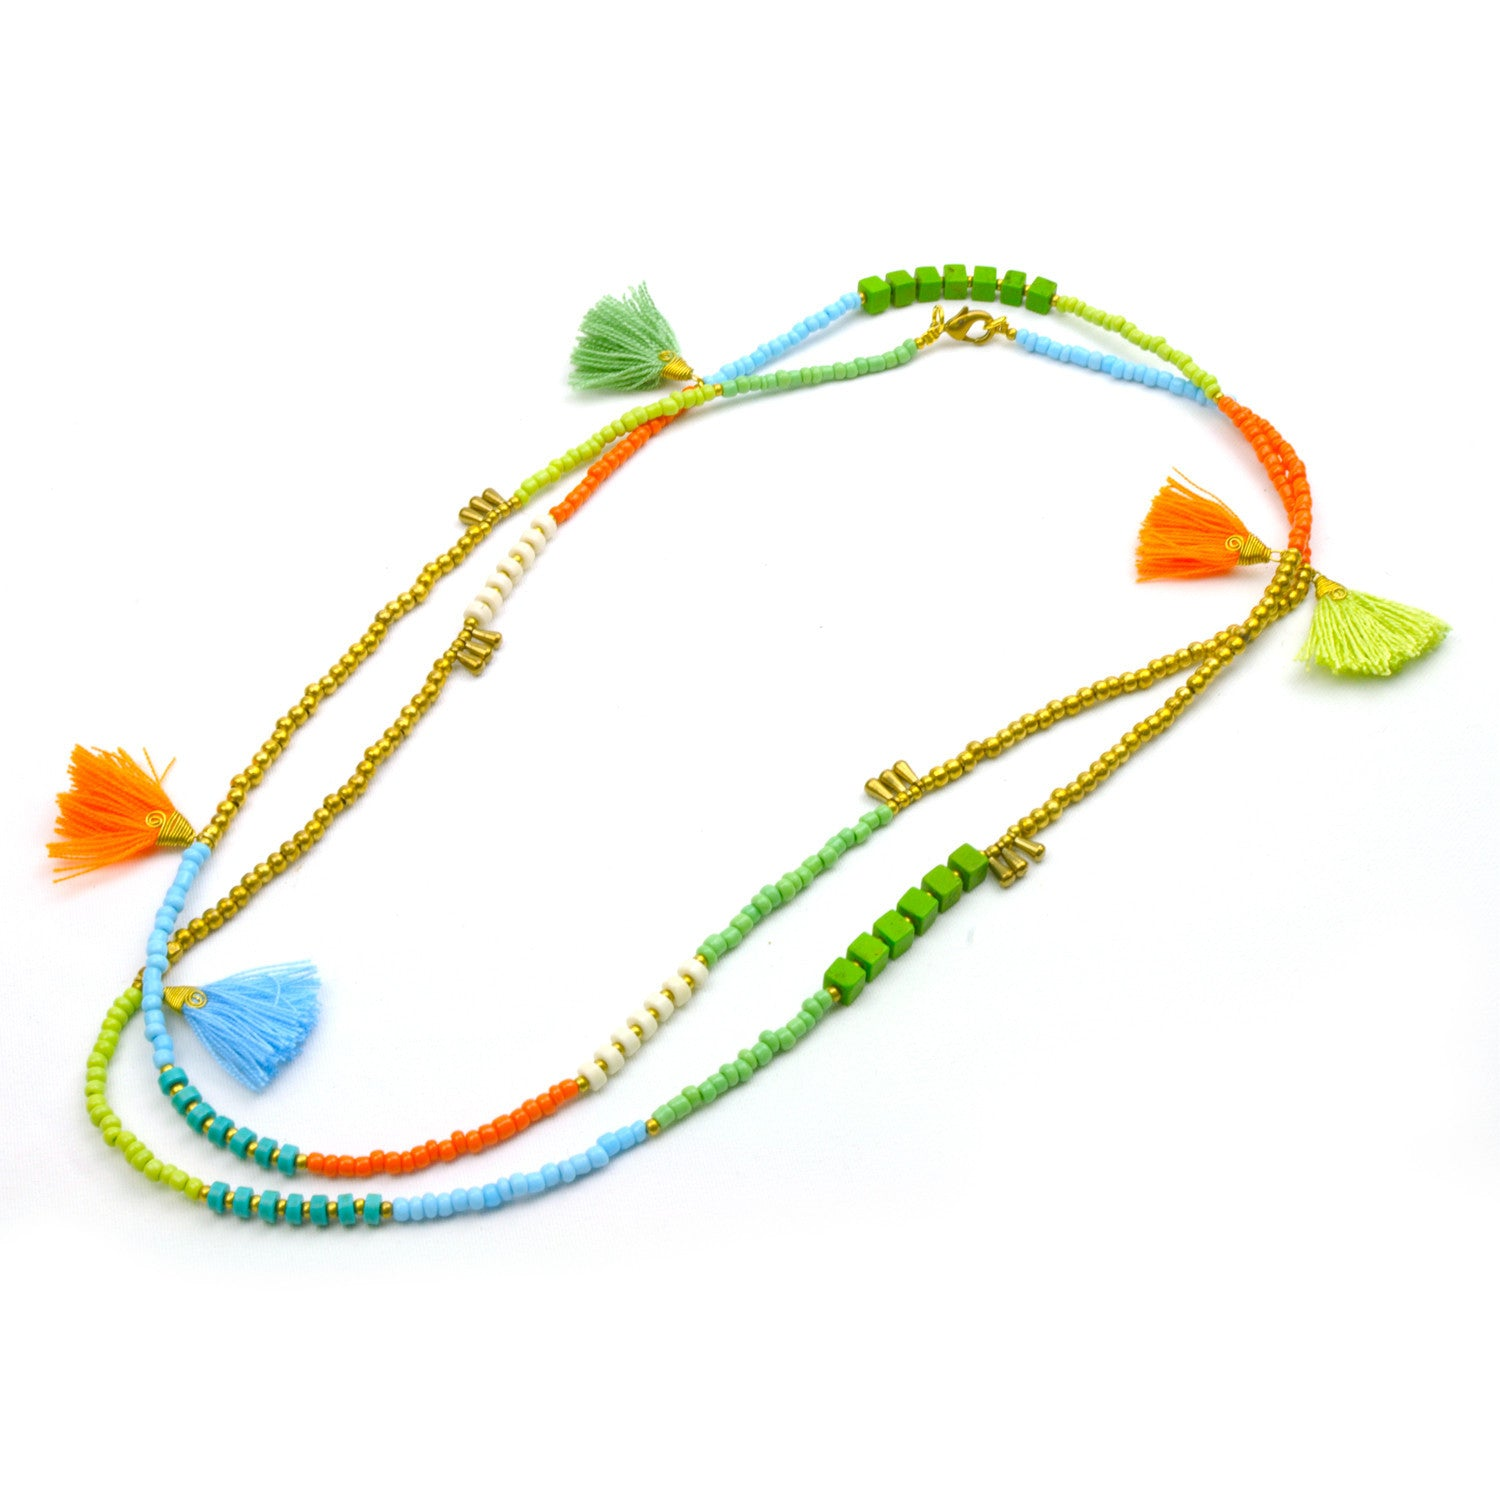 Kerala 3-in-1 Necklace Island - Global Groove